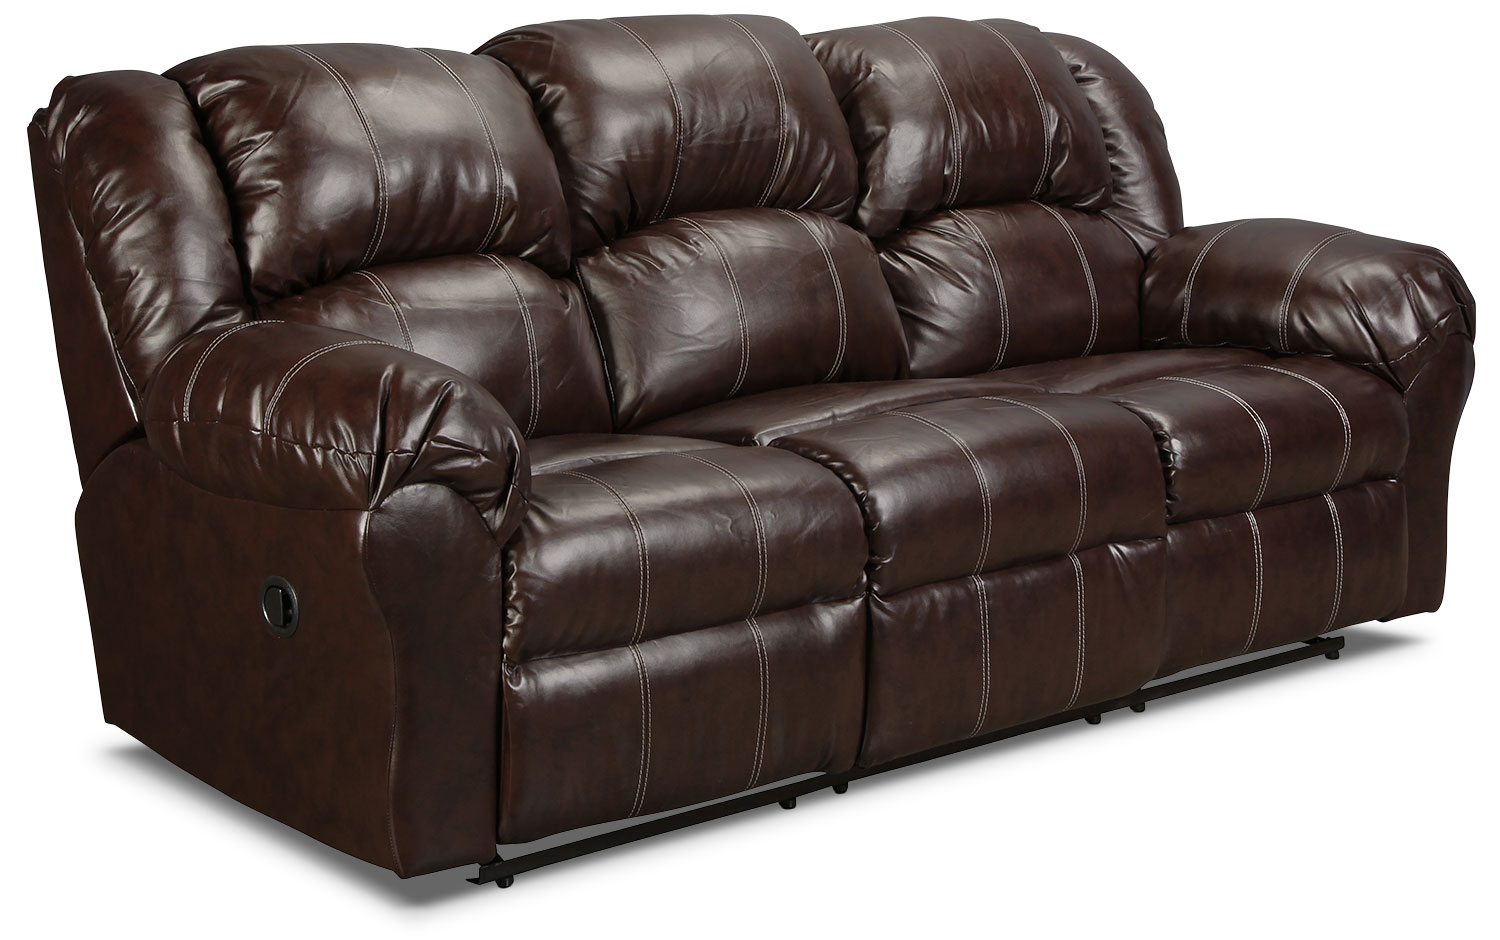 Decker reclining sofa brown levin furniture for Couch 0 finance